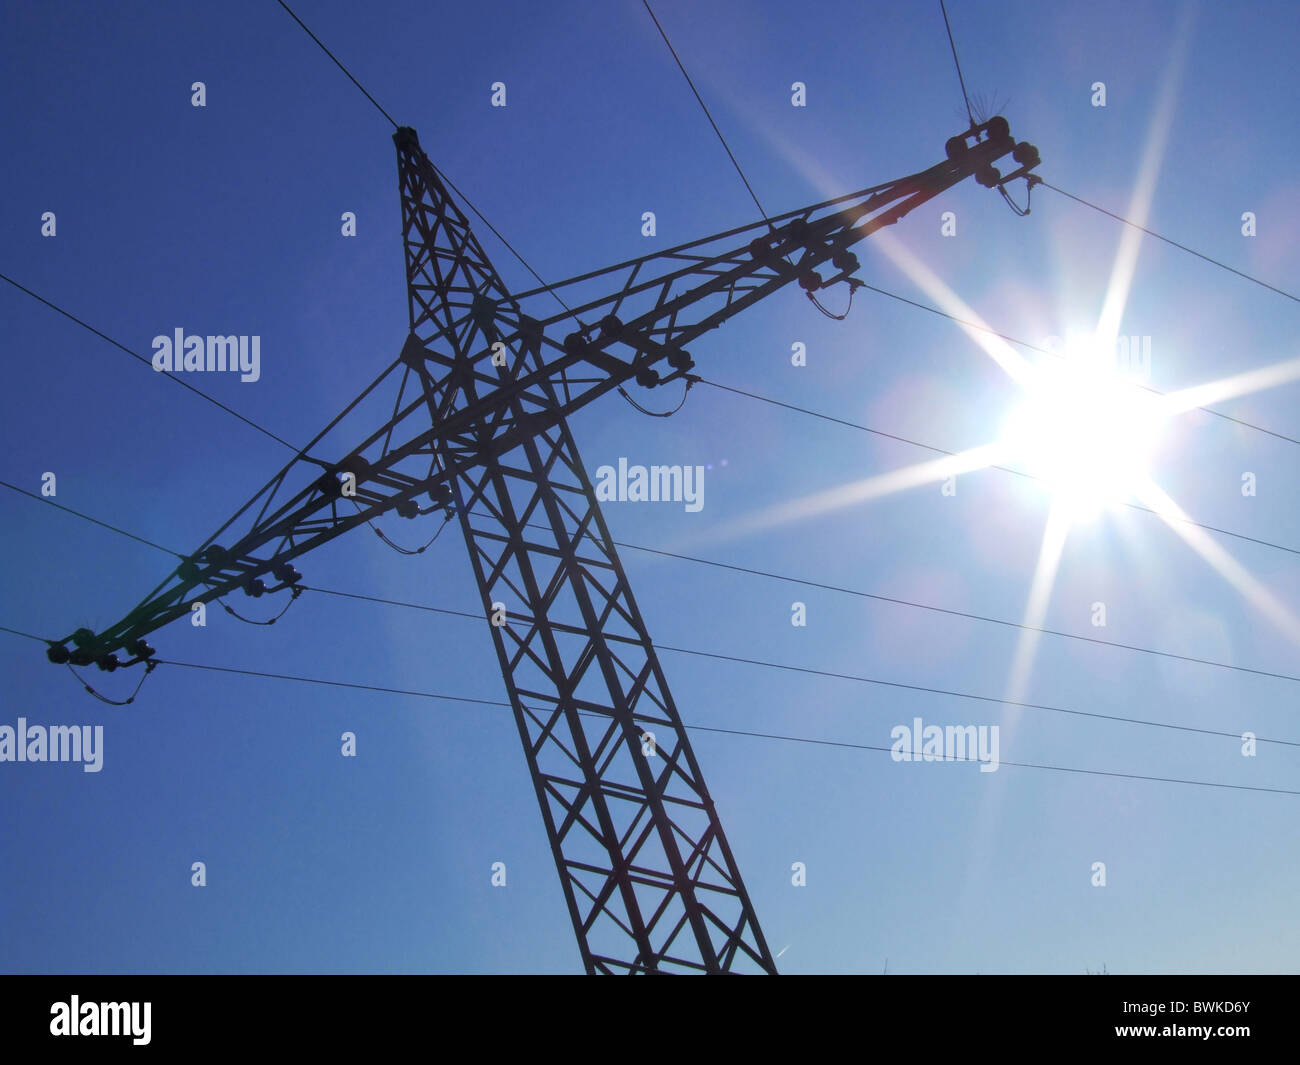 Power By Wire Stock Photos & Power By Wire Stock Images - Alamy